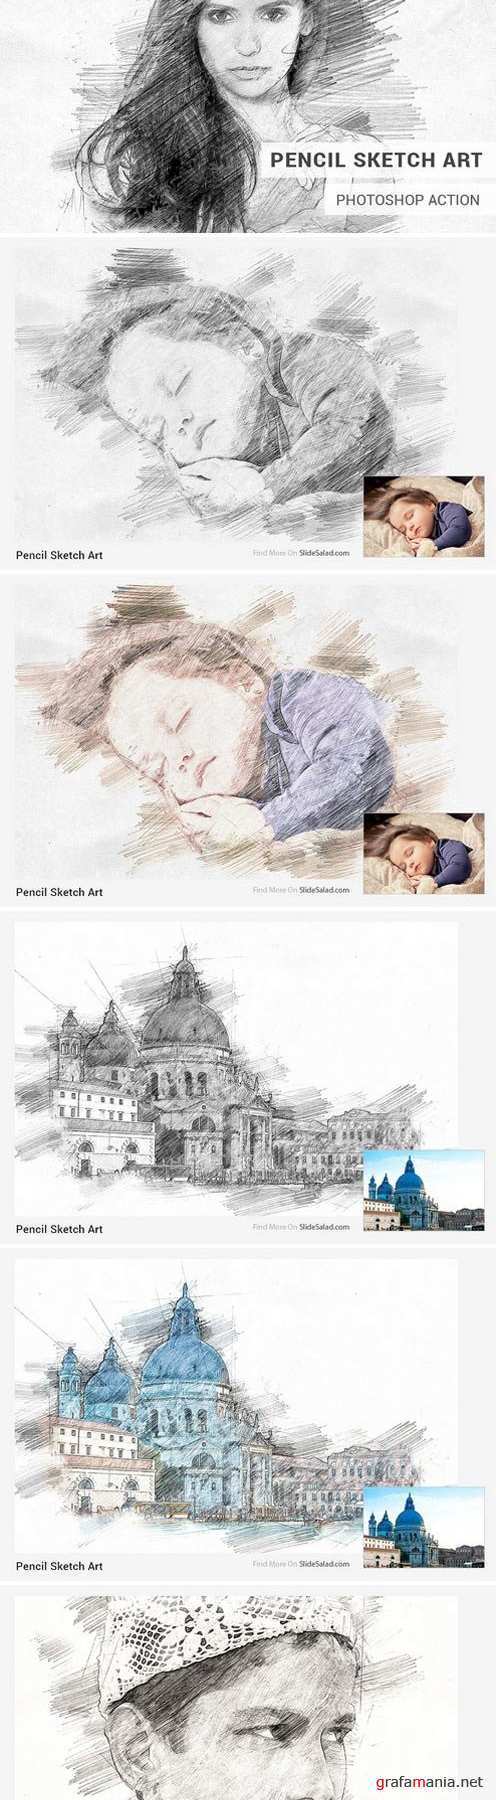 Pencil Sketch Art Photoshop Action 1821521